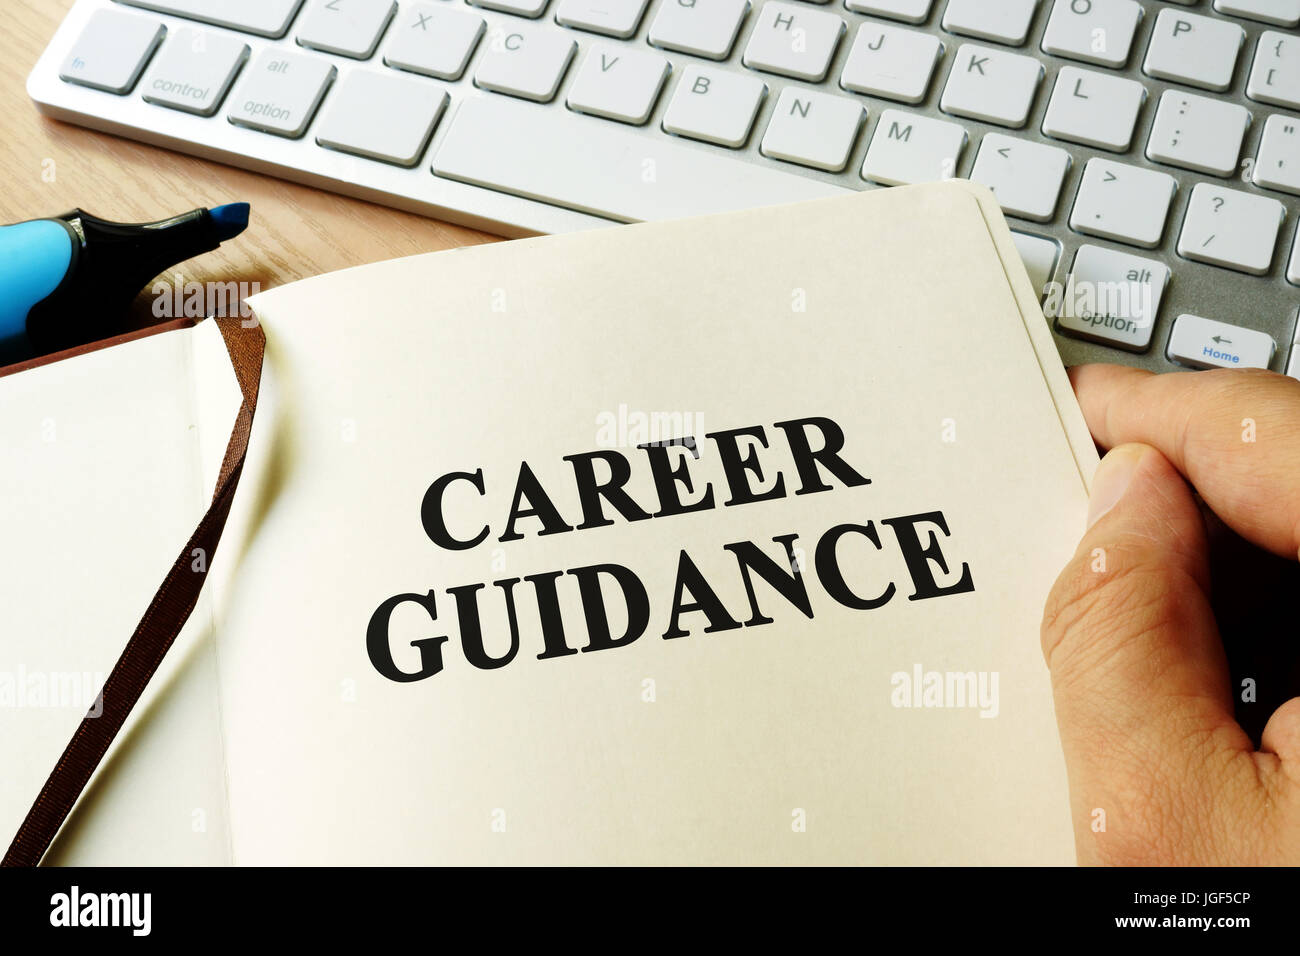 Hands holding book with title career guidance. - Stock Image